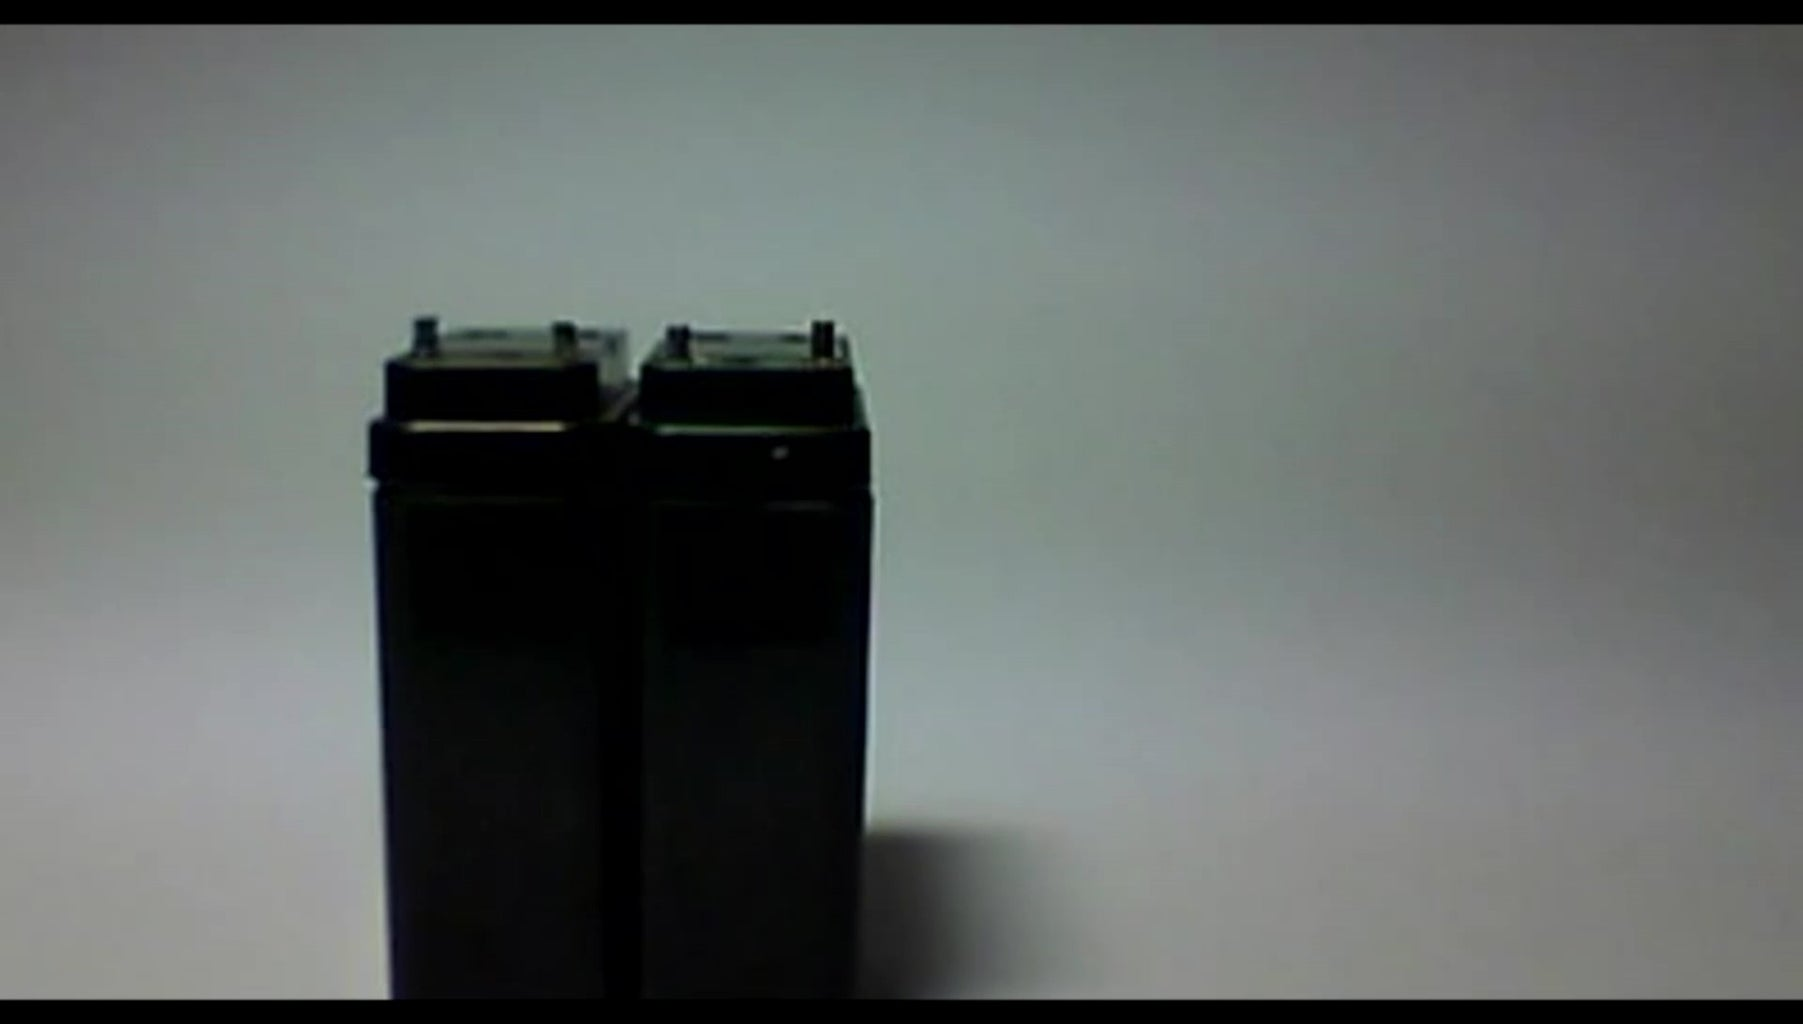 Let's Take a Look at the Batteries-